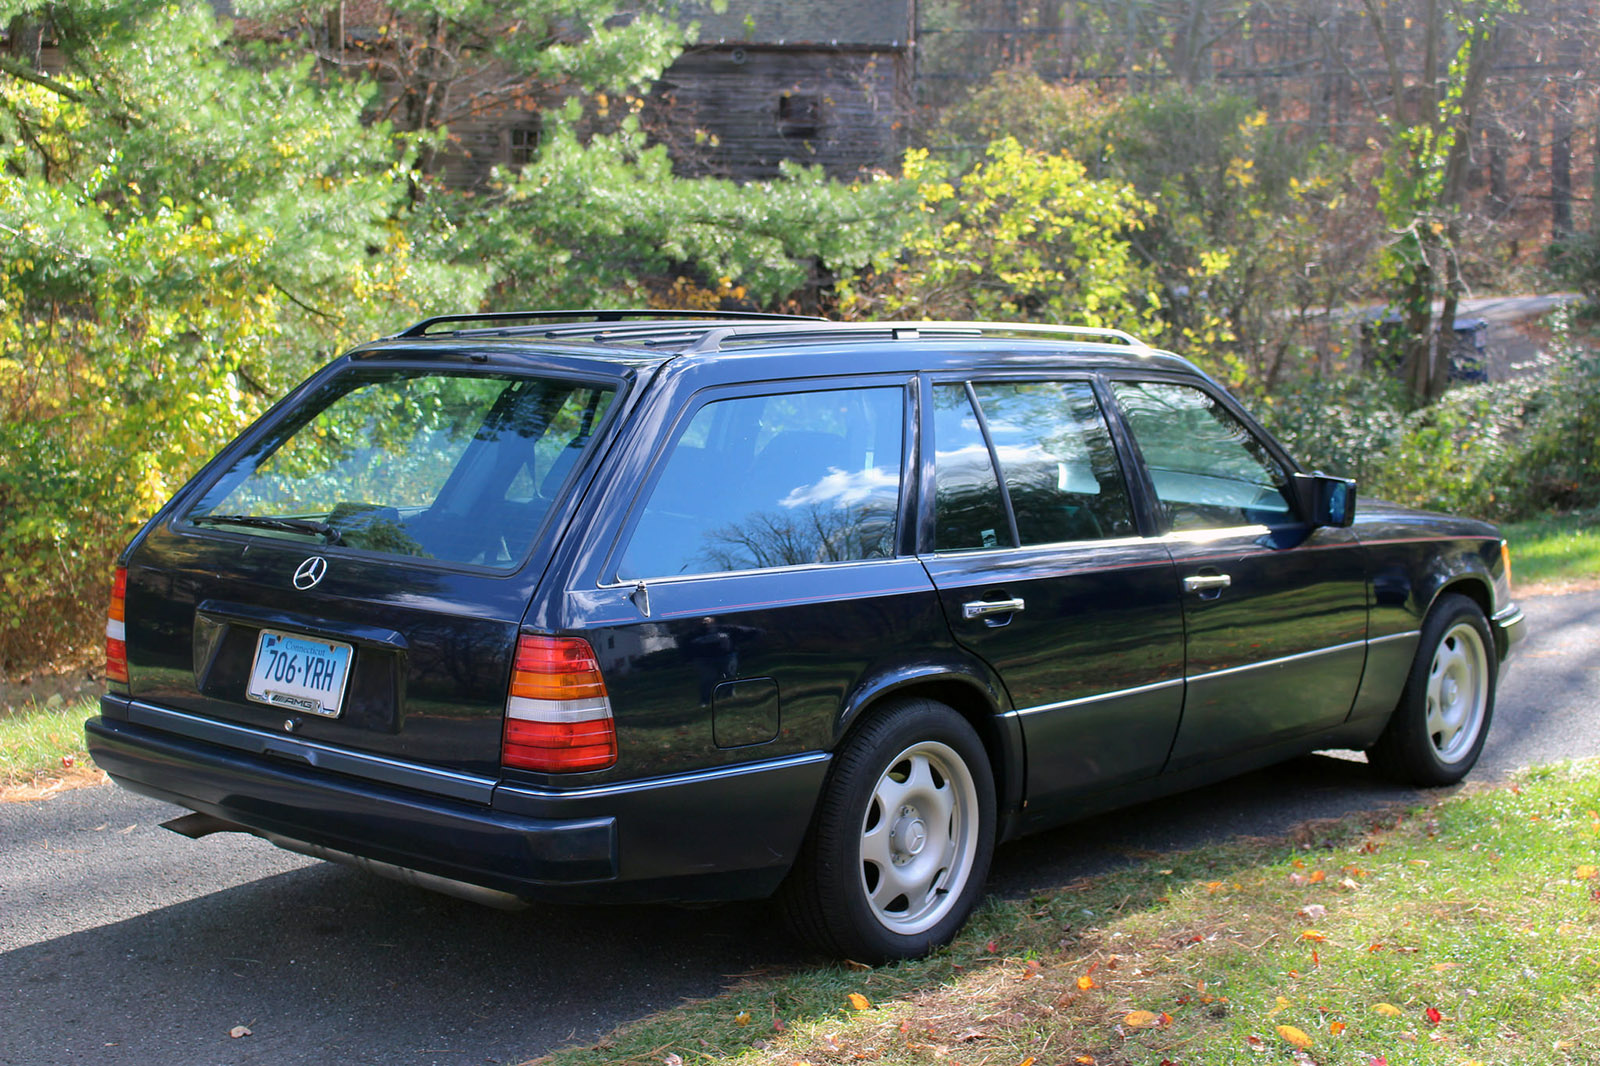 1995-Mercedes-E320-wagon-with-a-3.6-L-AMG-inline-six-06 W Wiring Harness For Sale on mercedes w126 for sale, mercedes diesel for sale, w108 for sale, w123 for sale, bmw e36 m3 for sale, mercedes w113 for sale,